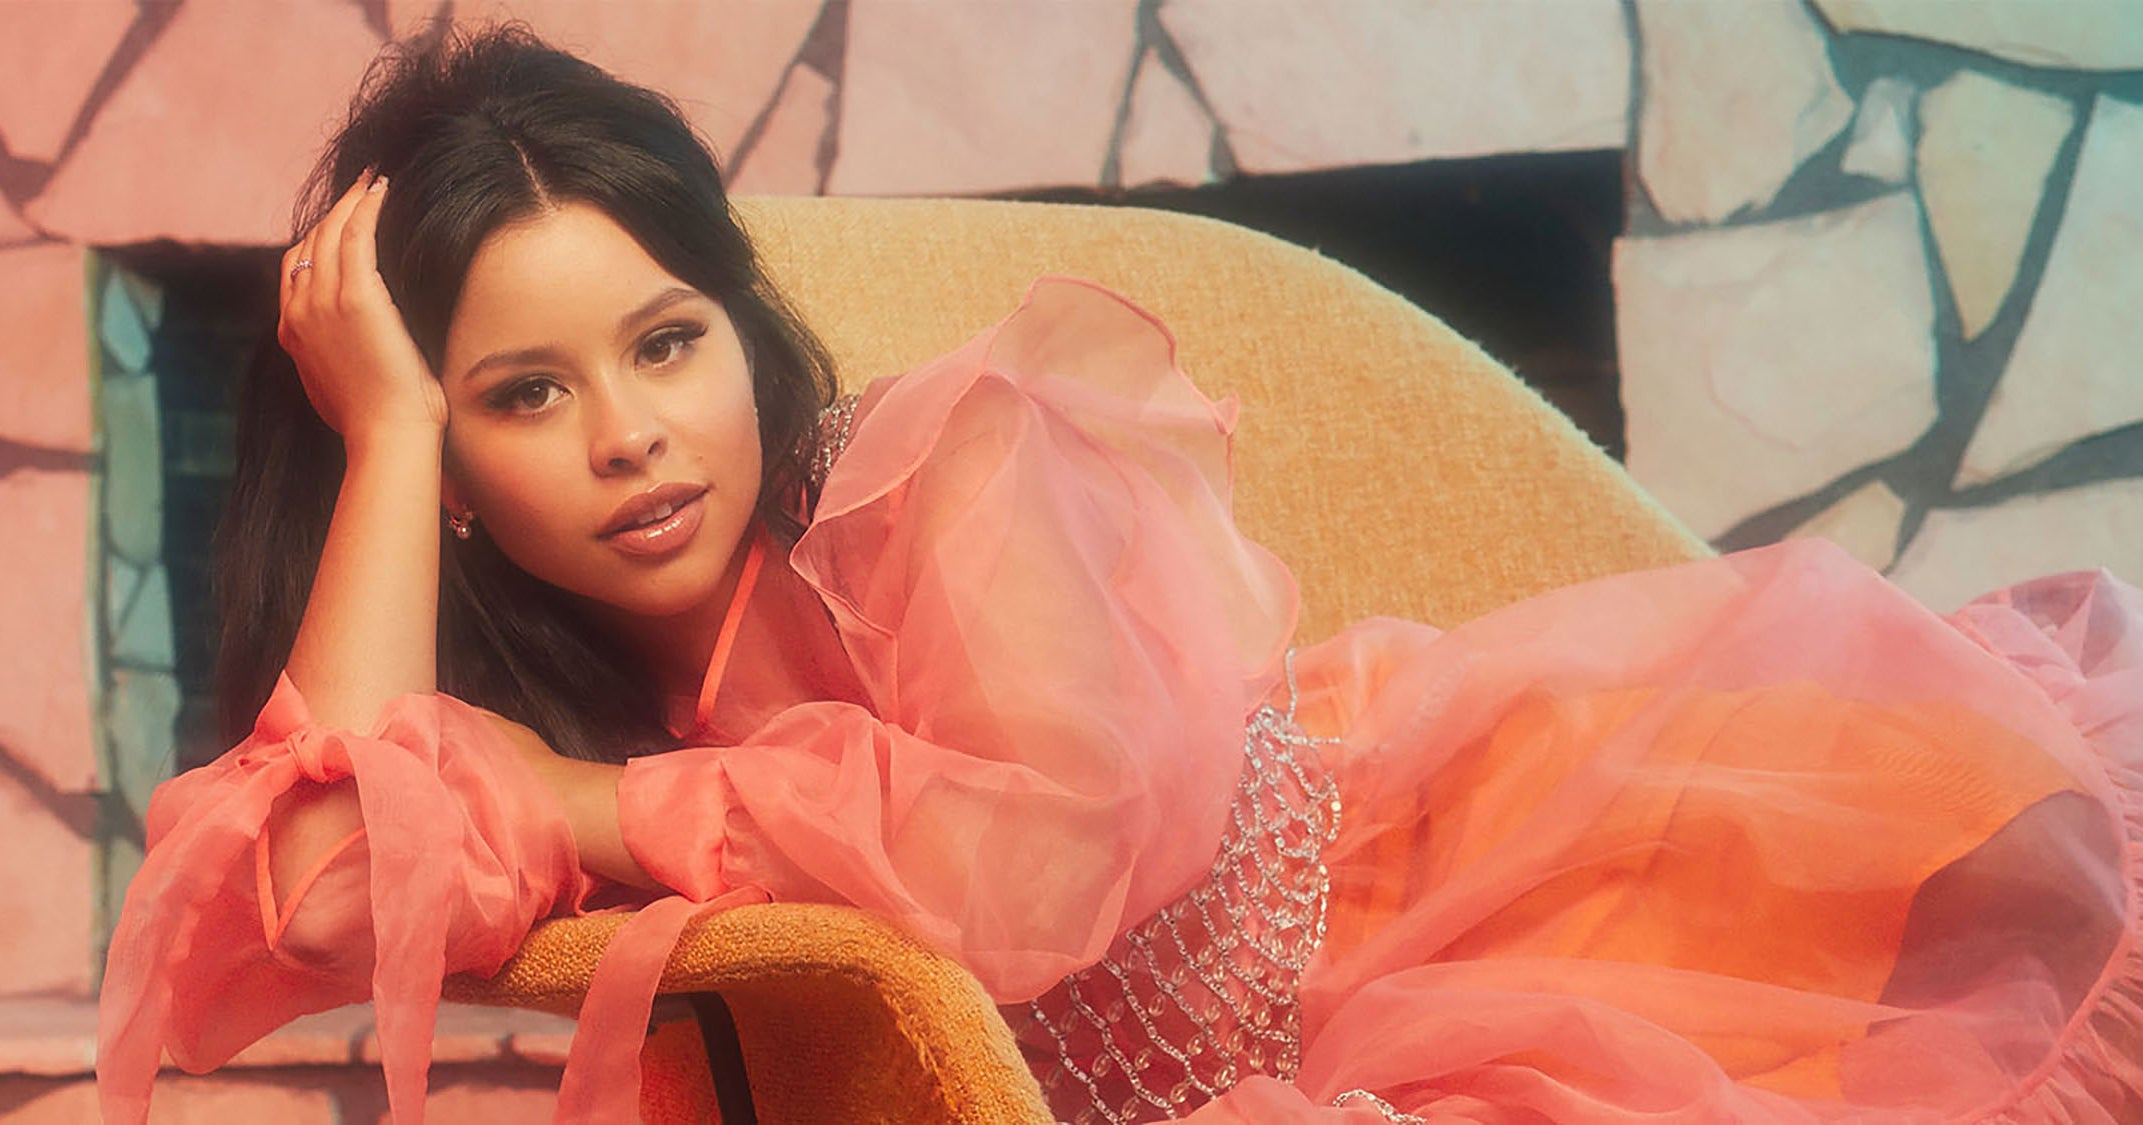 Haters Are Cierra Ramirez's Motivators. But Don't Come For Her Latinidad